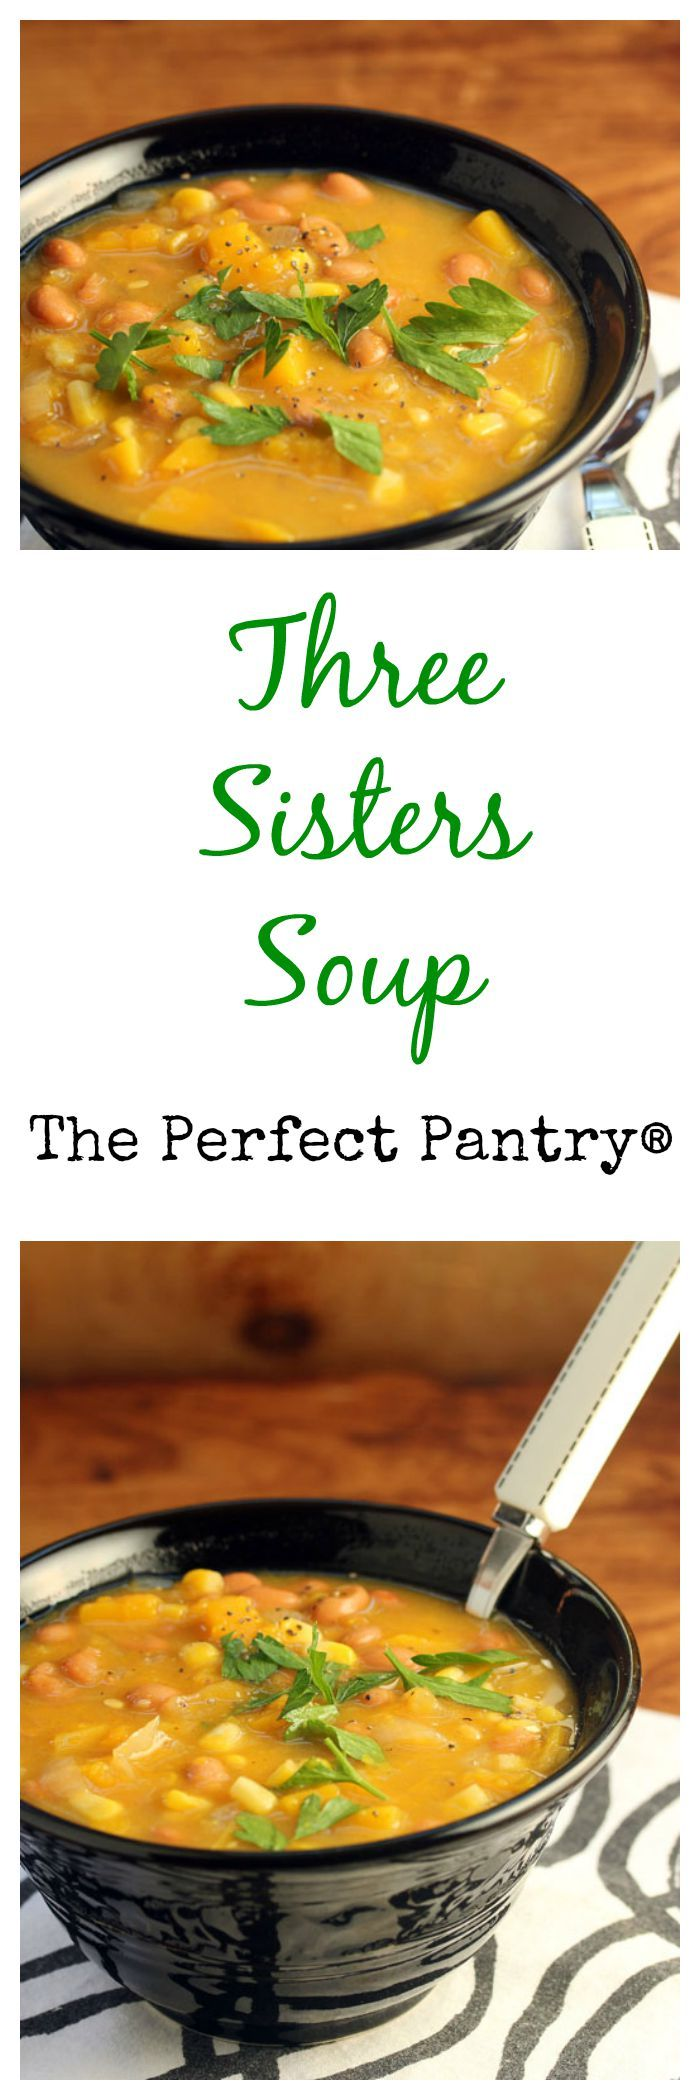 Three sisters soup (beans, corn and squash); sounds delicious!  from ThePerfectPantry.com.